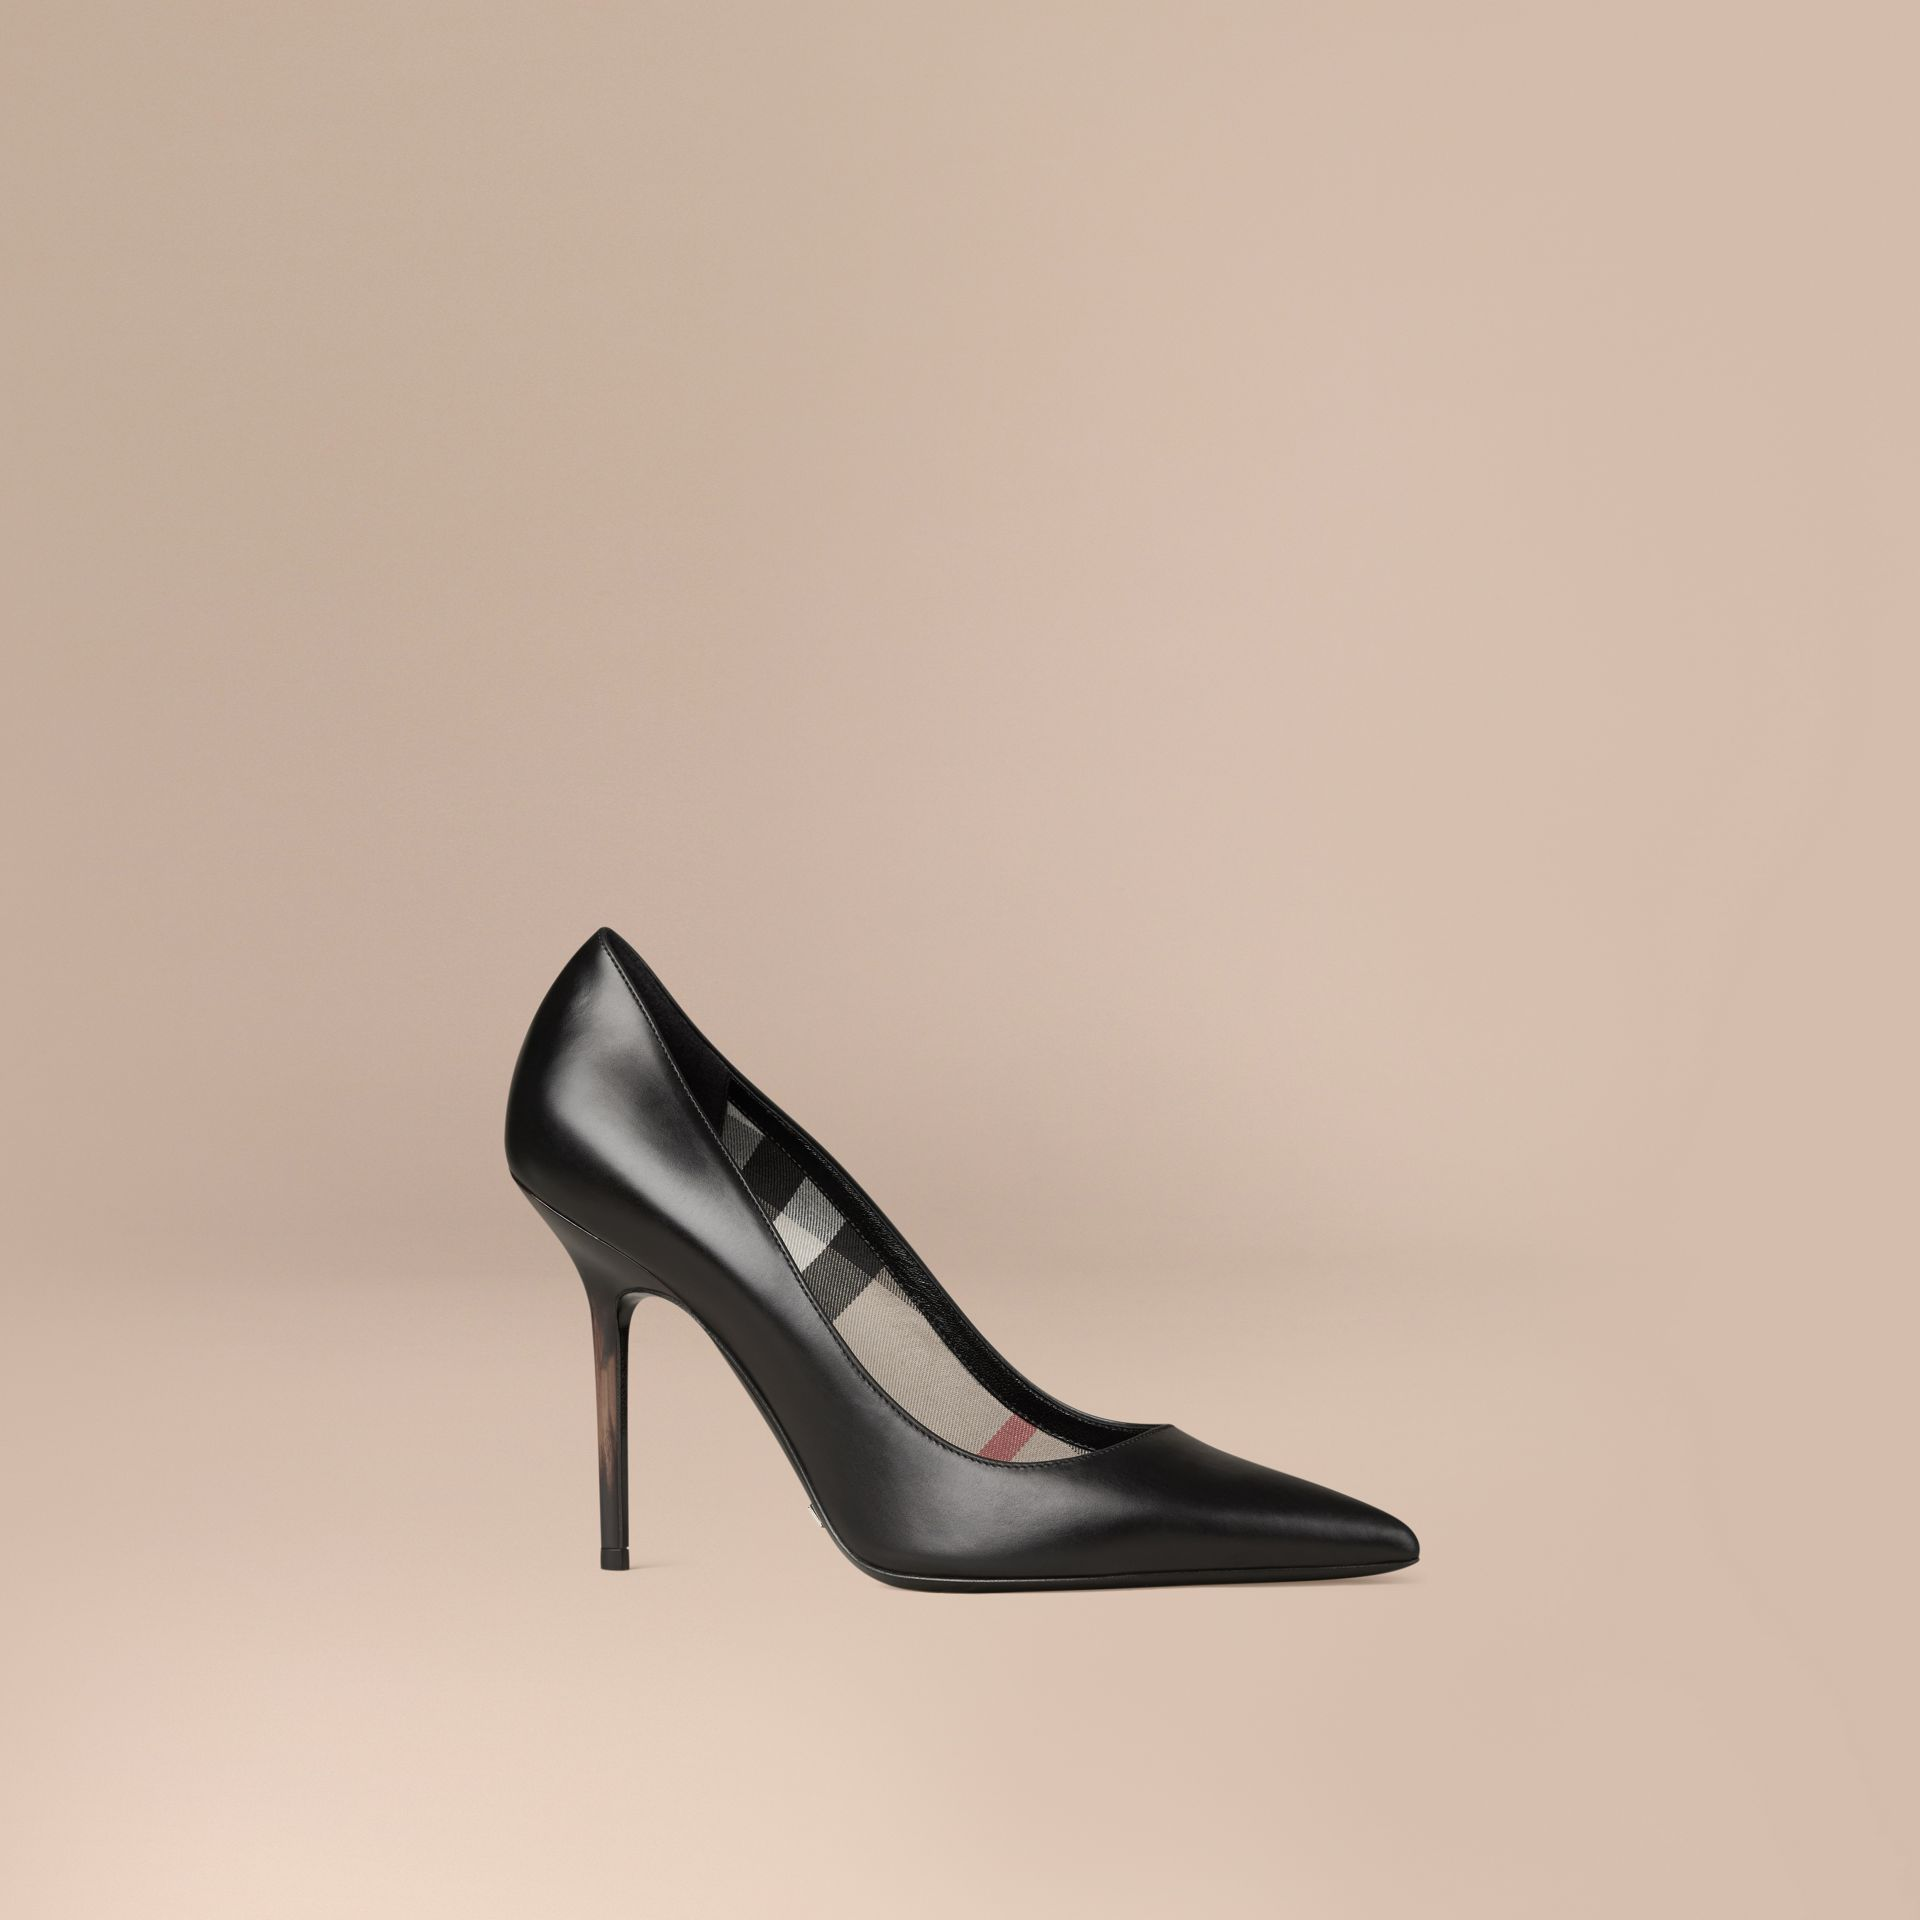 Black Hand-painted Point-toe Leather Pumps Black - gallery image 1